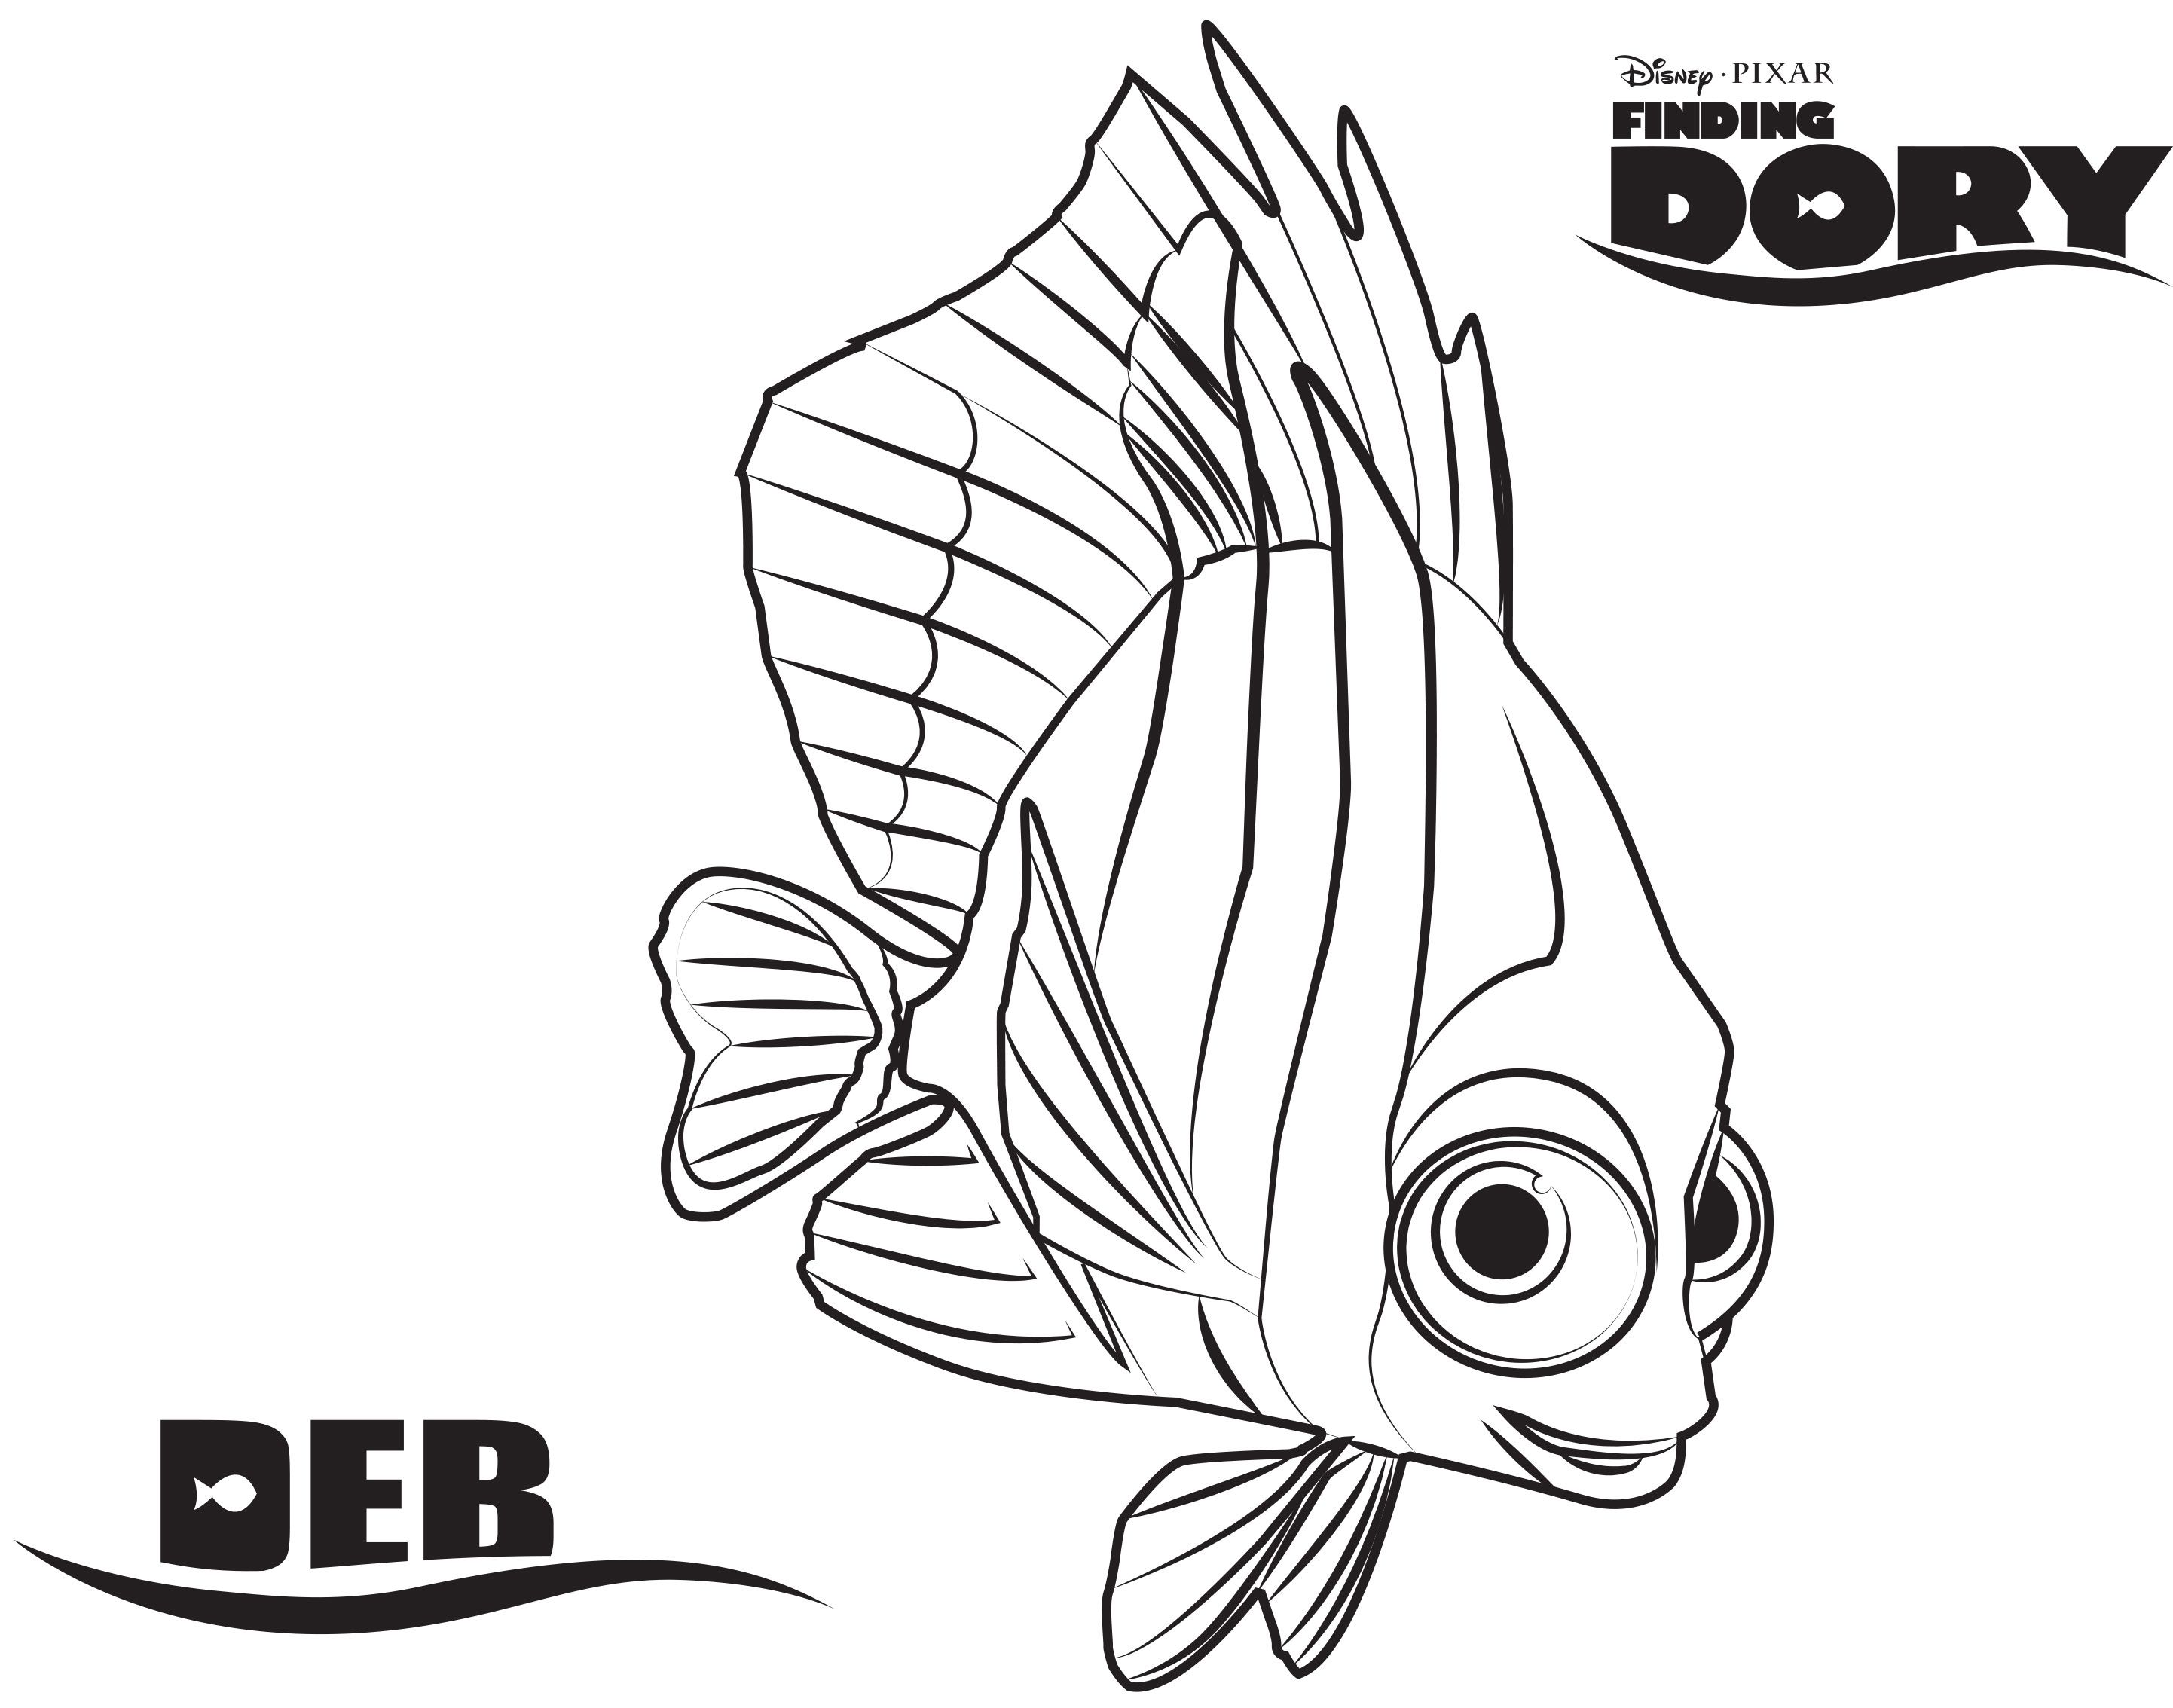 Baby Dory Coloring Pages At Getcolorings